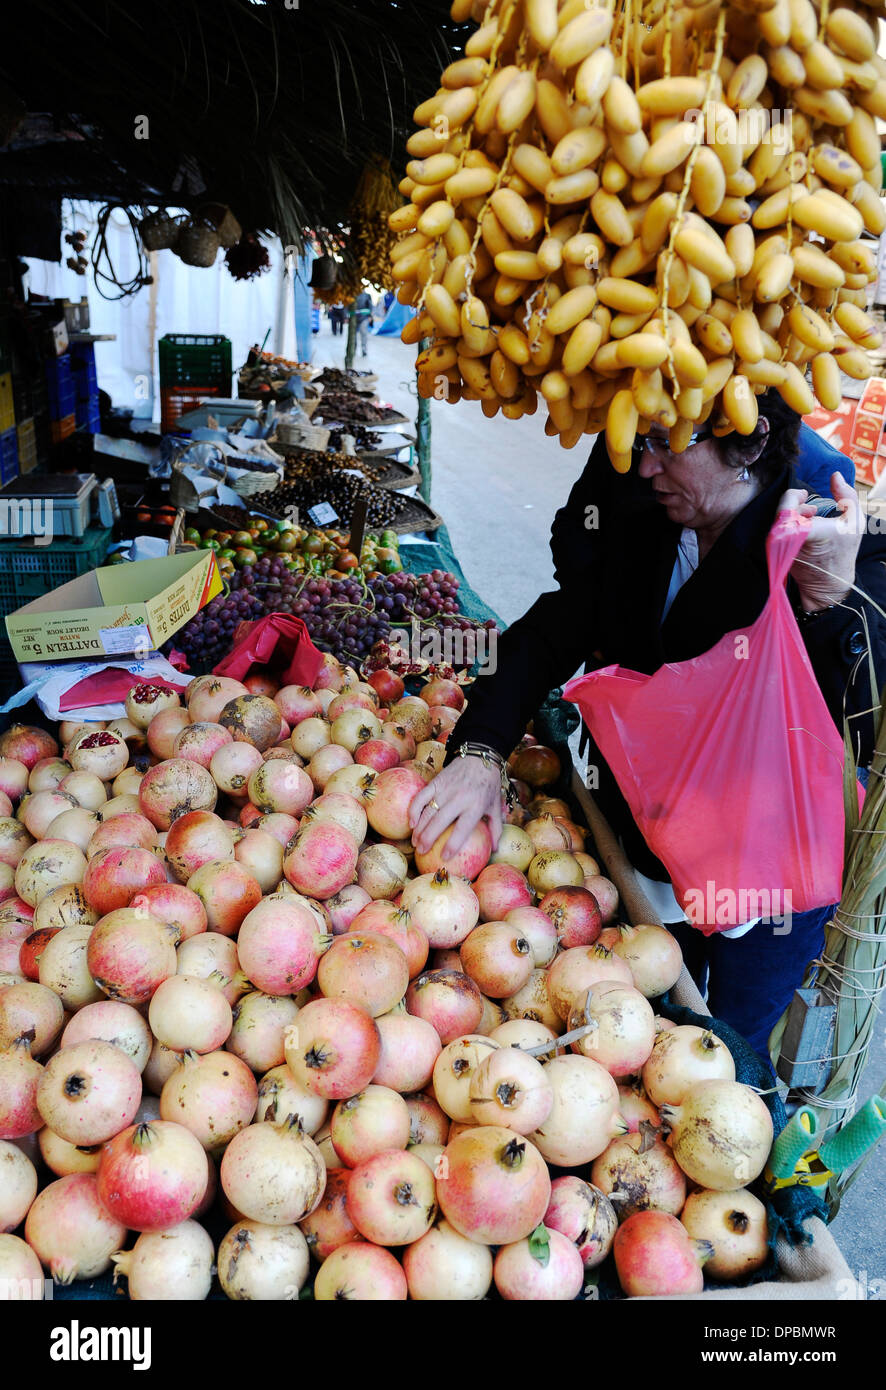 shopper buying pomegranates at fruitstand in the annual All Saints Market in Cocentaina, Alicante province, Spain Stock Photo